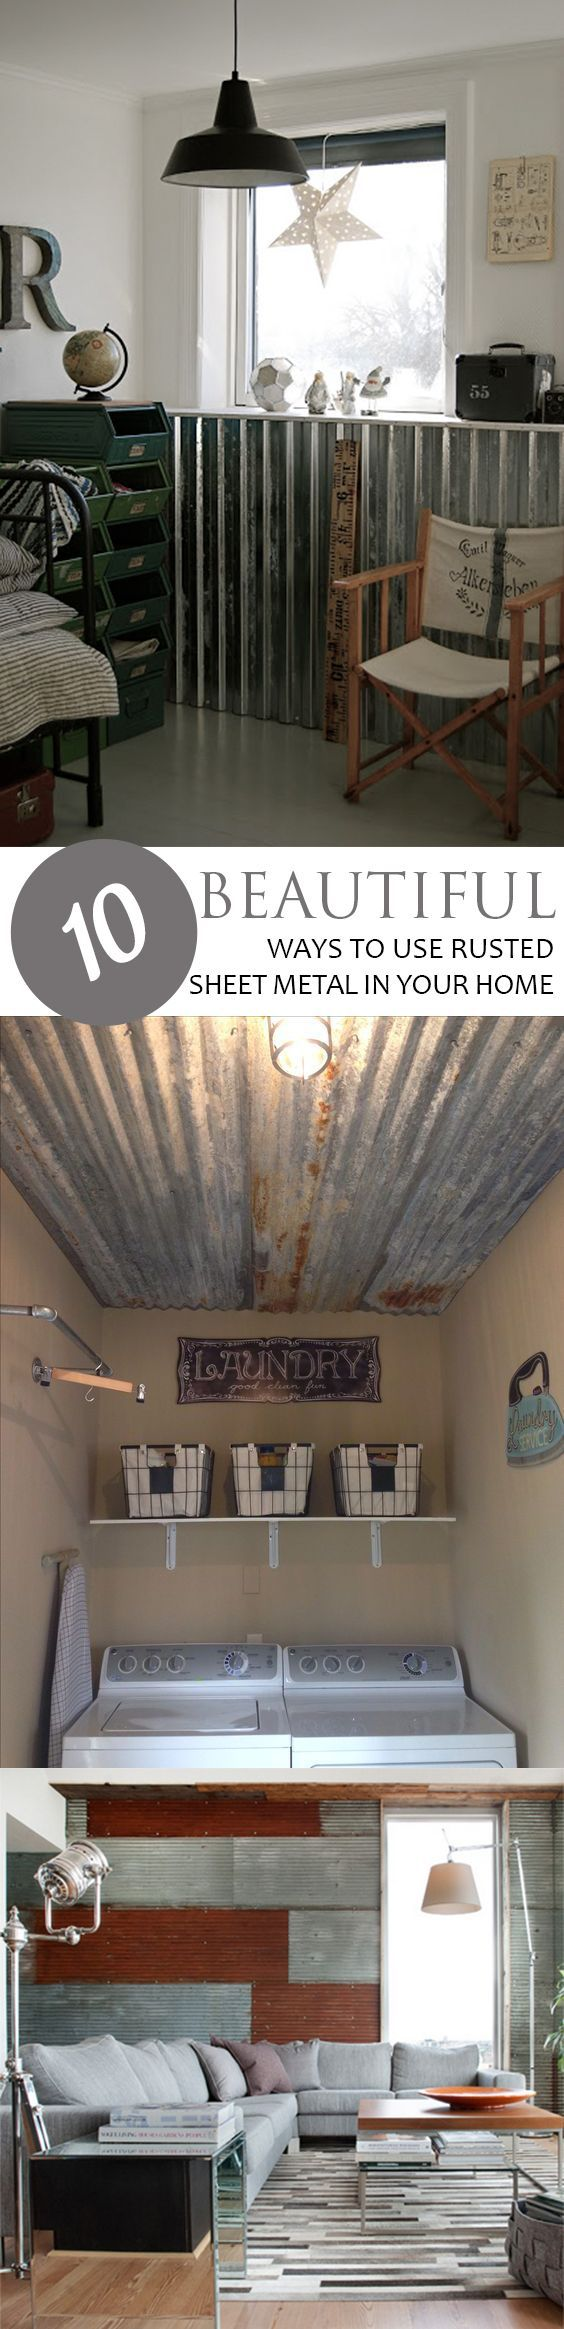 best 25+ sheet metal decor ideas on pinterest | sheet metal crafts